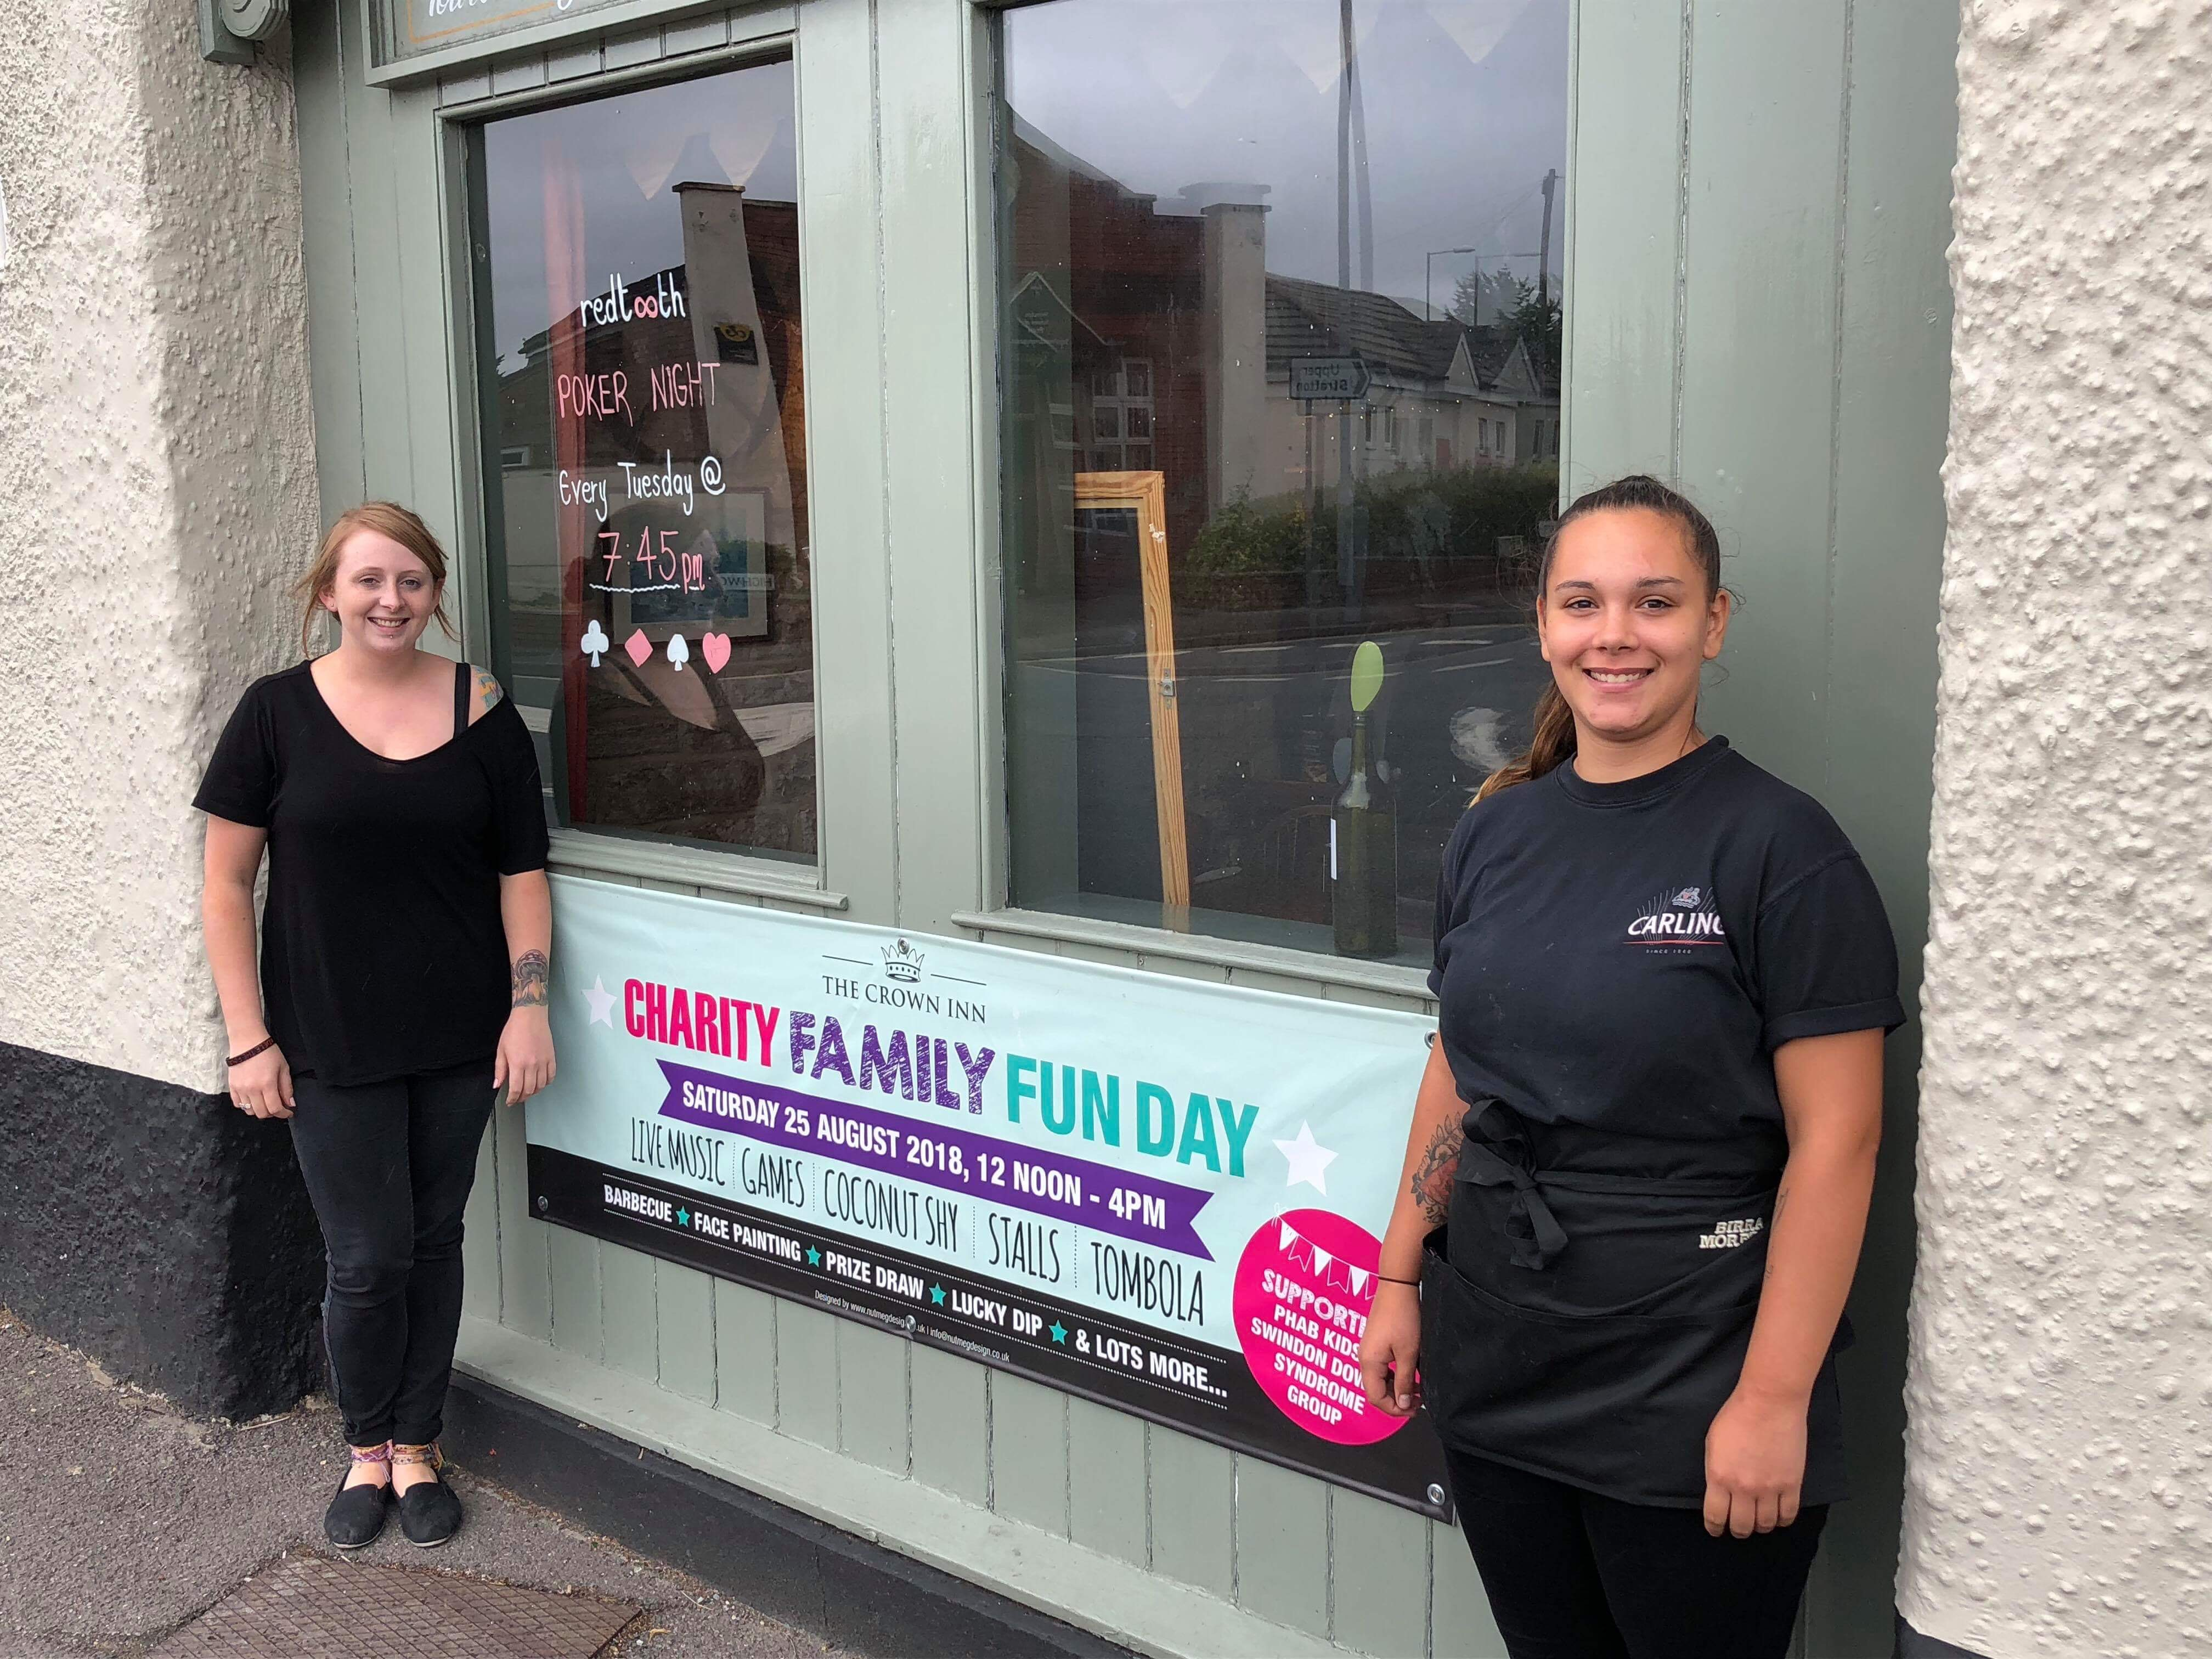 Pub holds charity fun day over Bank Holiday